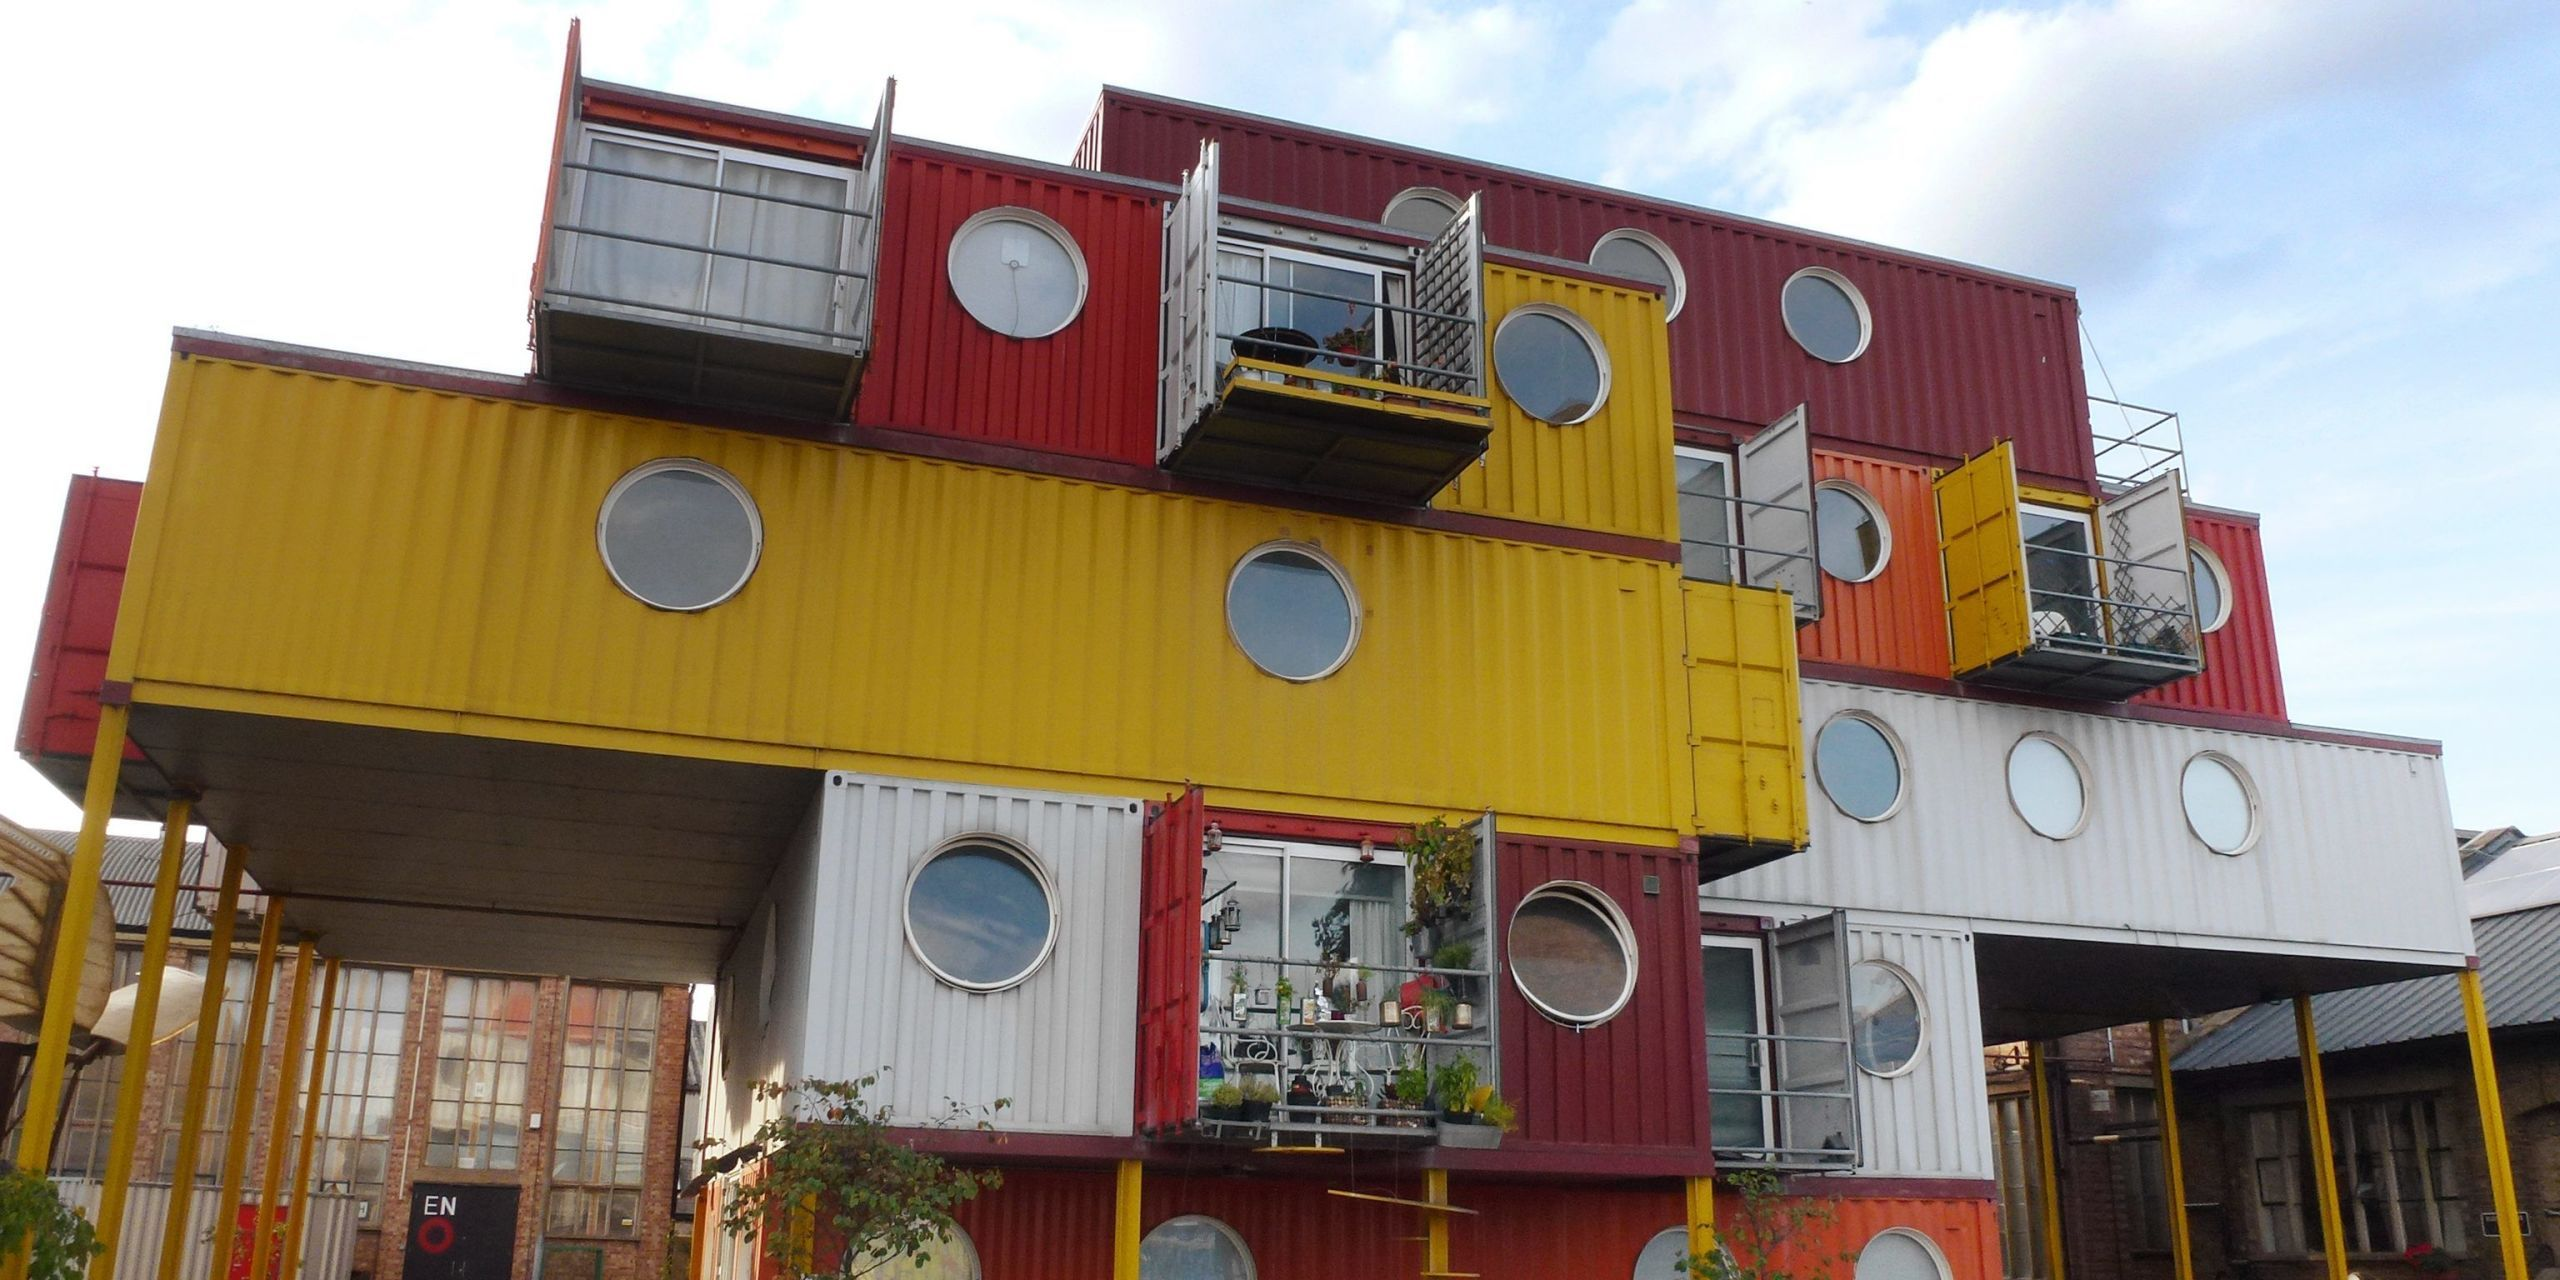 Image. Engineers And Architects Have Transformed Ordinary Shipping  Containers ...